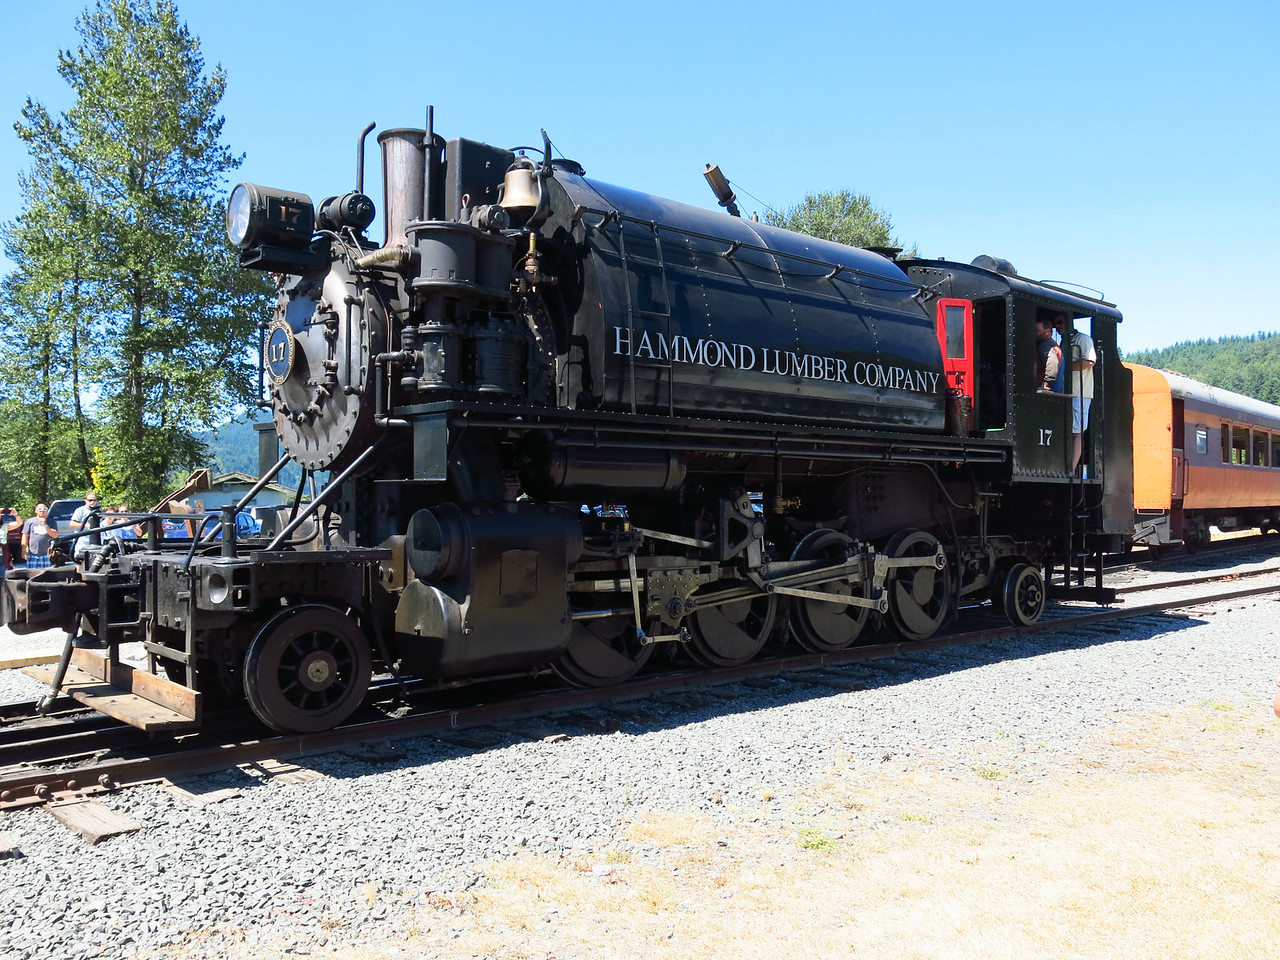 Steam locomotive #17 at Mount Rainier Scenic Railroad